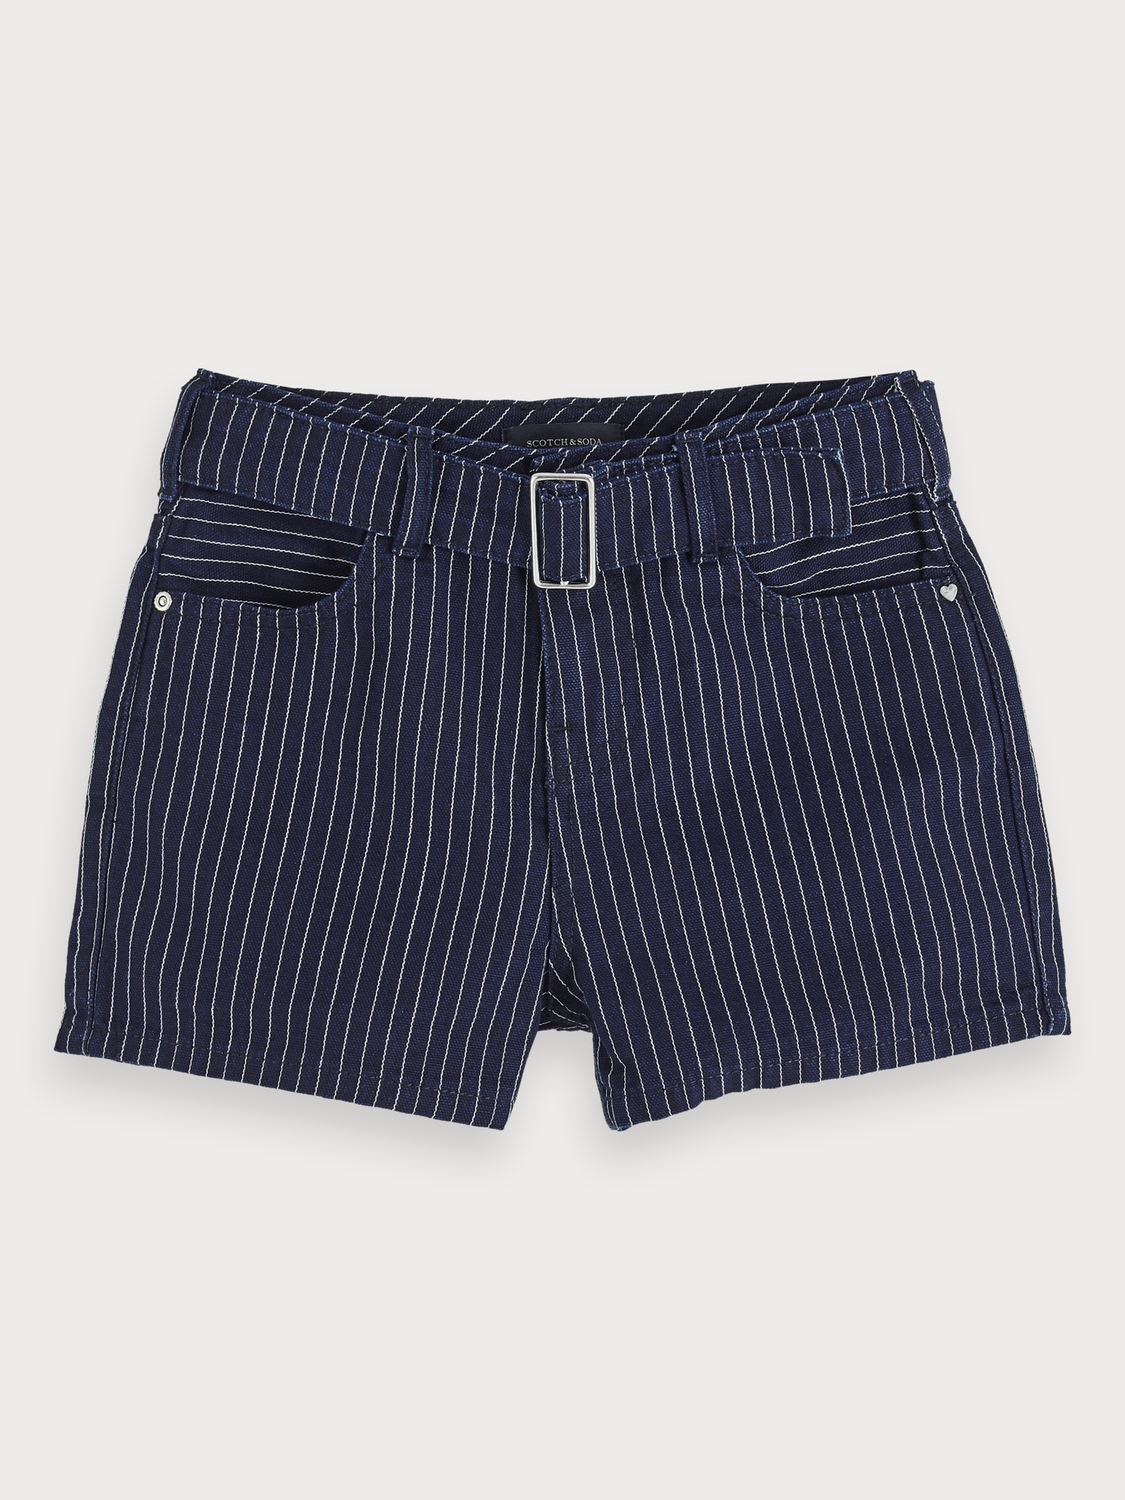 Bambina Shorts in denim a righe hickory